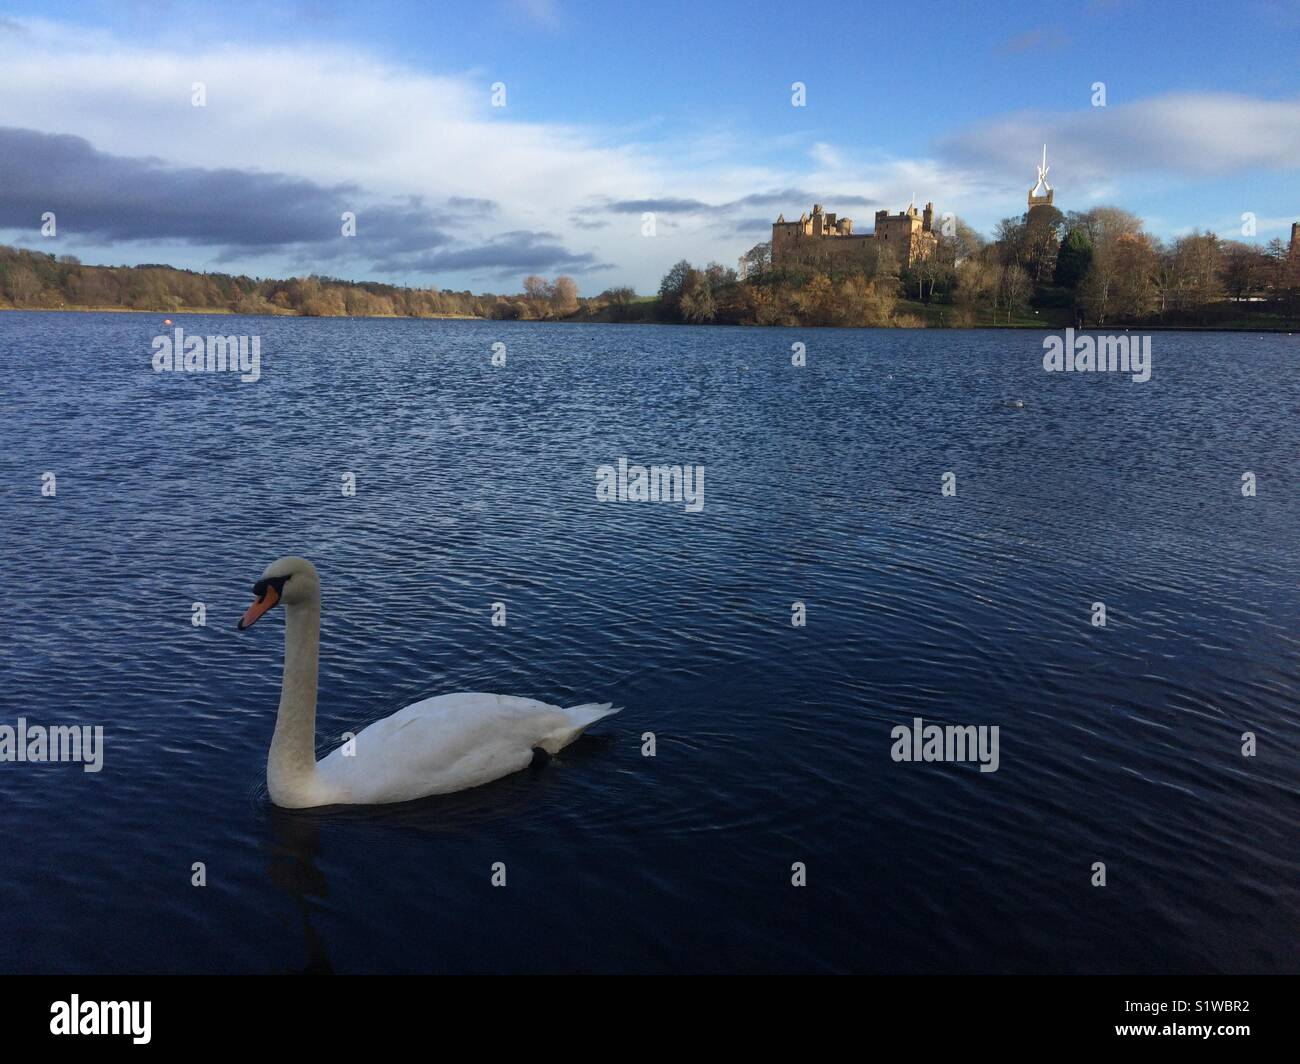 A day in The Loch - Stock Image